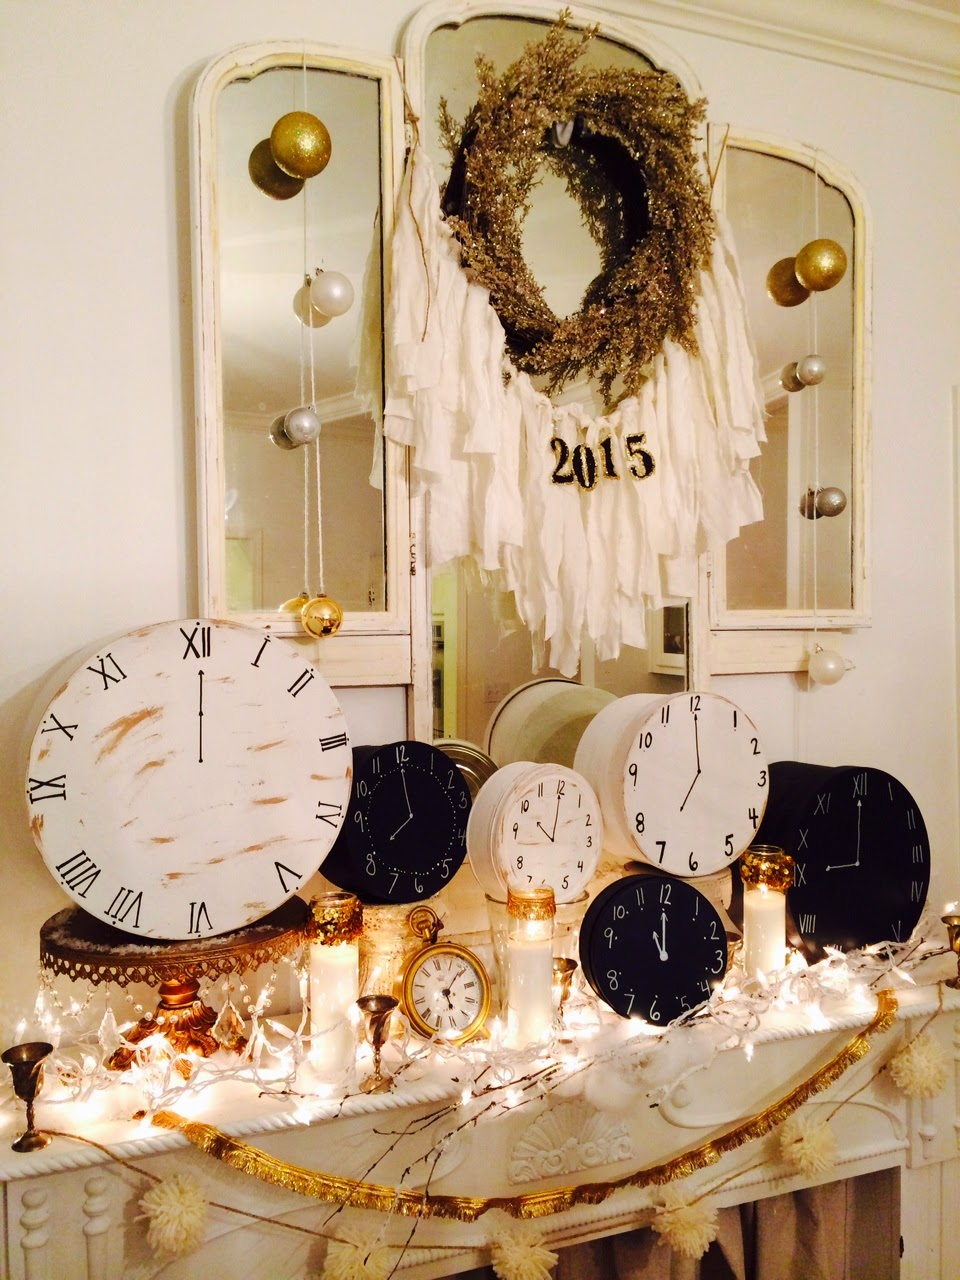 Little Farmstead: New Year's Decorating & A Fun Tradition!